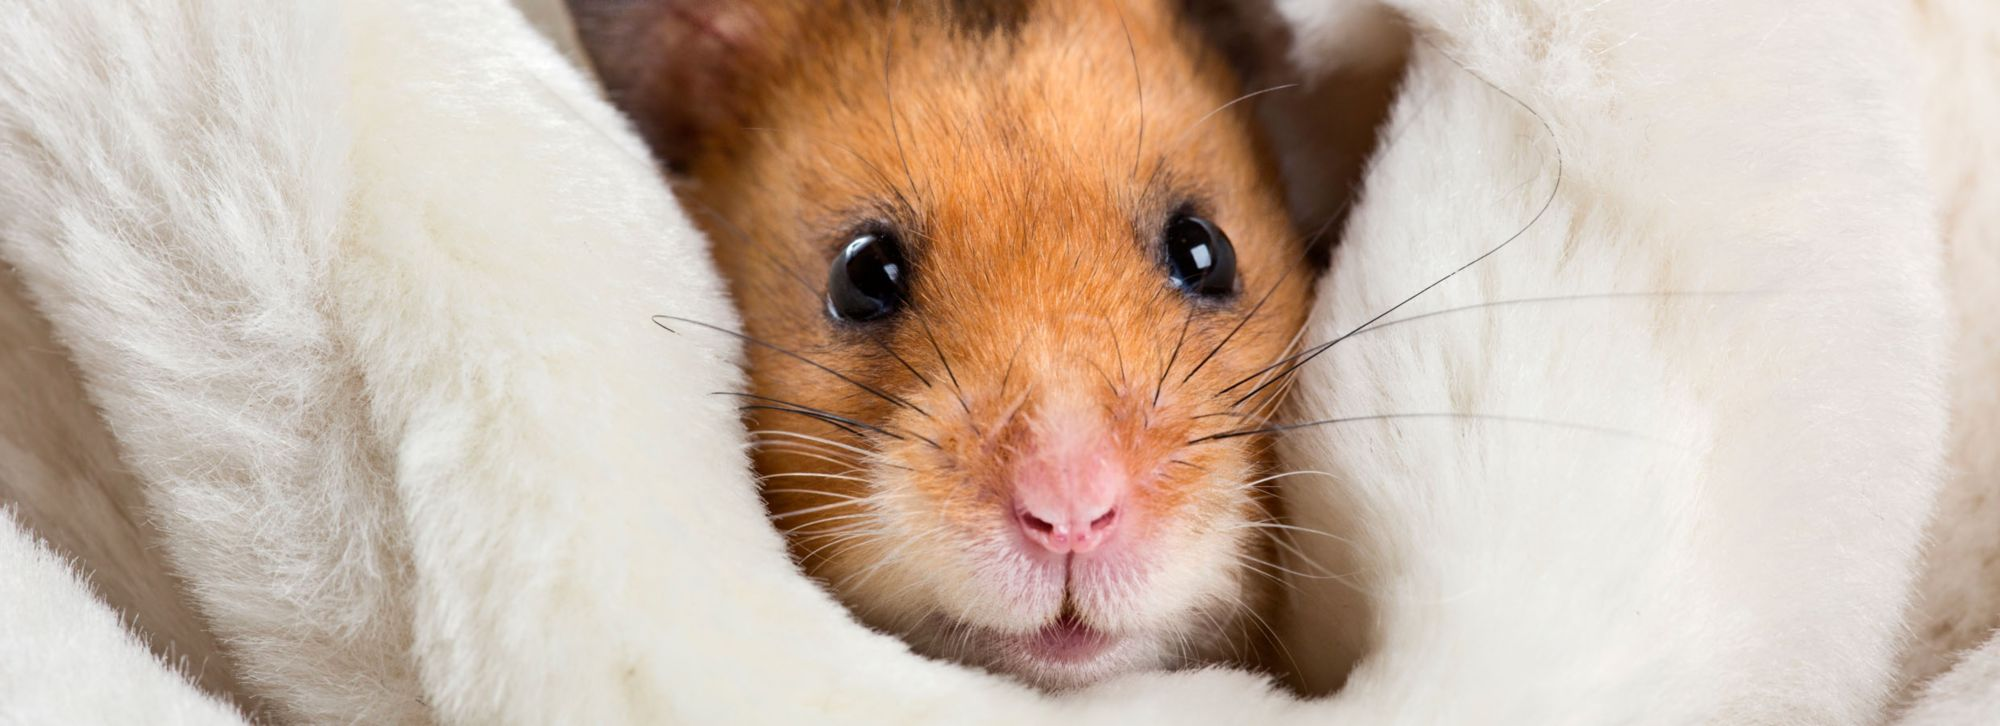 So, You Want a Hamster?